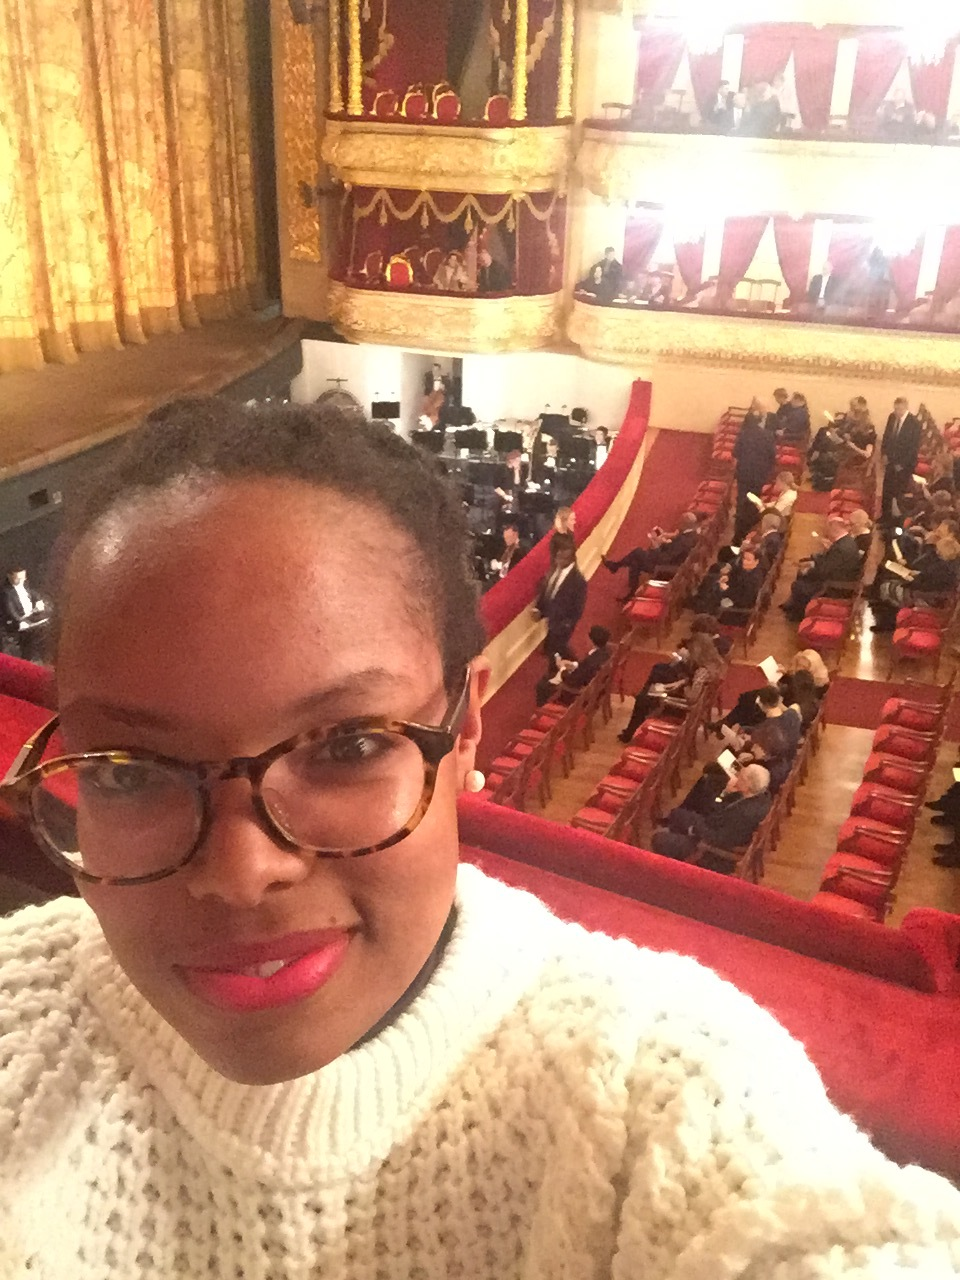 Here I am during intermission of the Opera I went to see at the Bolshoi Theatre